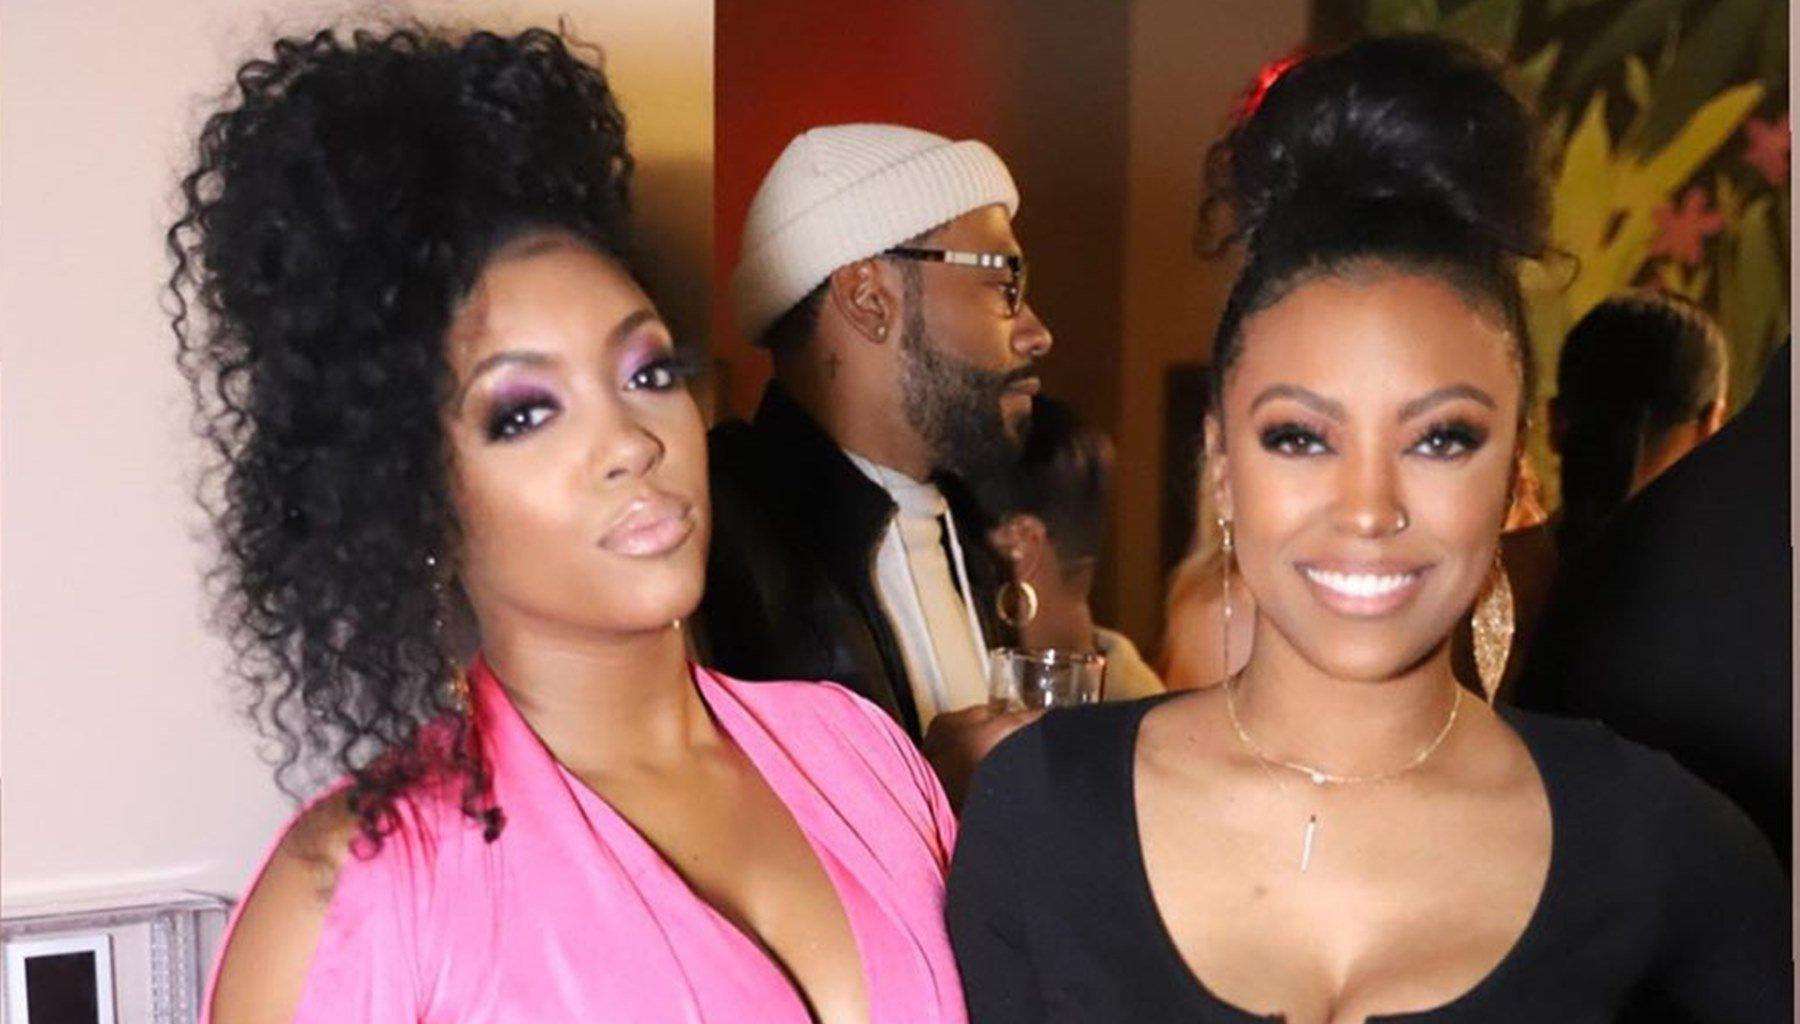 Porsha Williams Shares Gorgeous Family Photos For Christmas - See Them Here